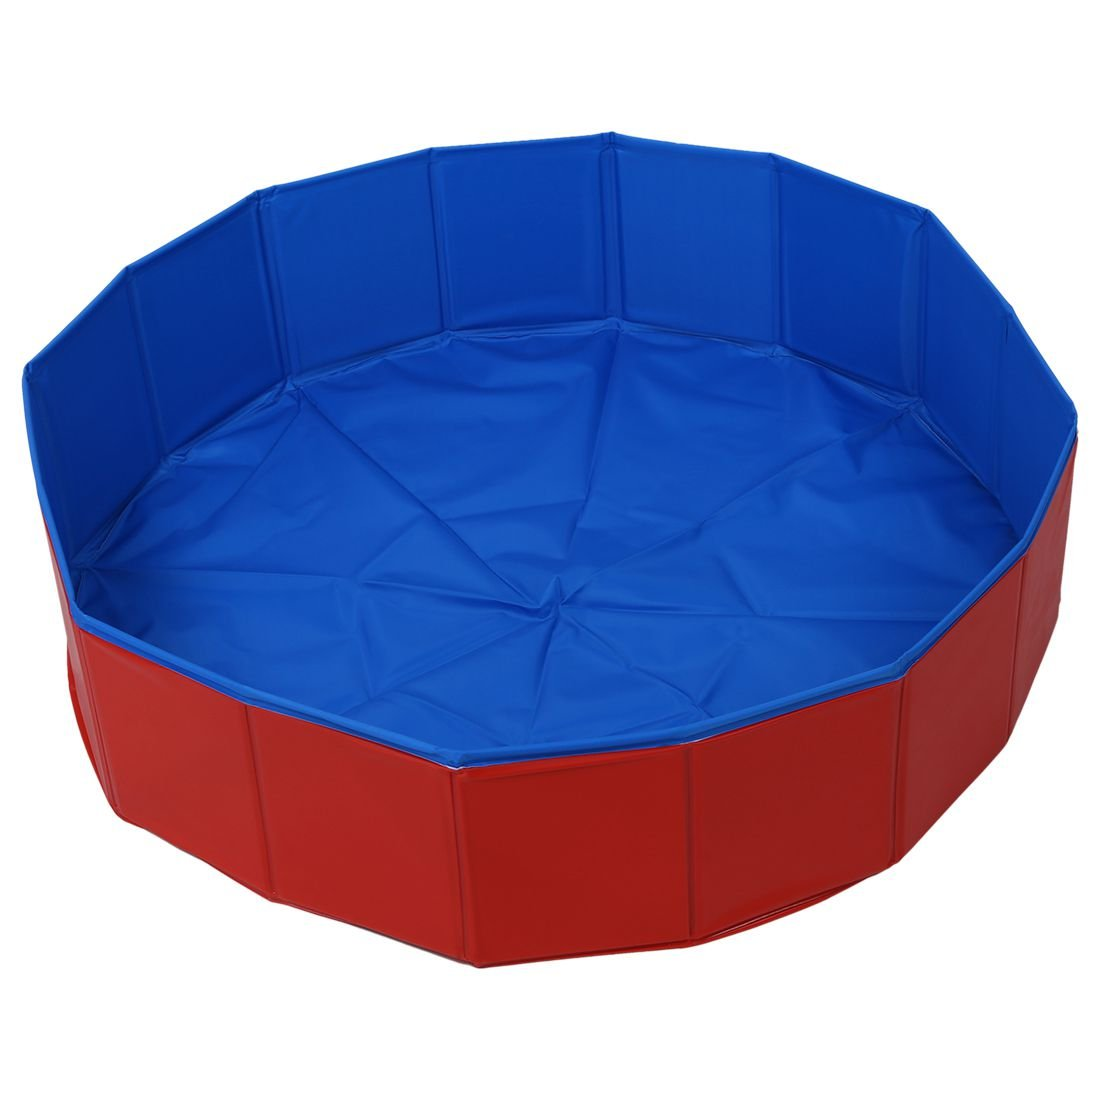 FurryFriends Foldable Dog Pool - Folding Dog/Cat Bath Tub - Collapsible Pet Spa Whelping Box Large (50''x 12''), Red